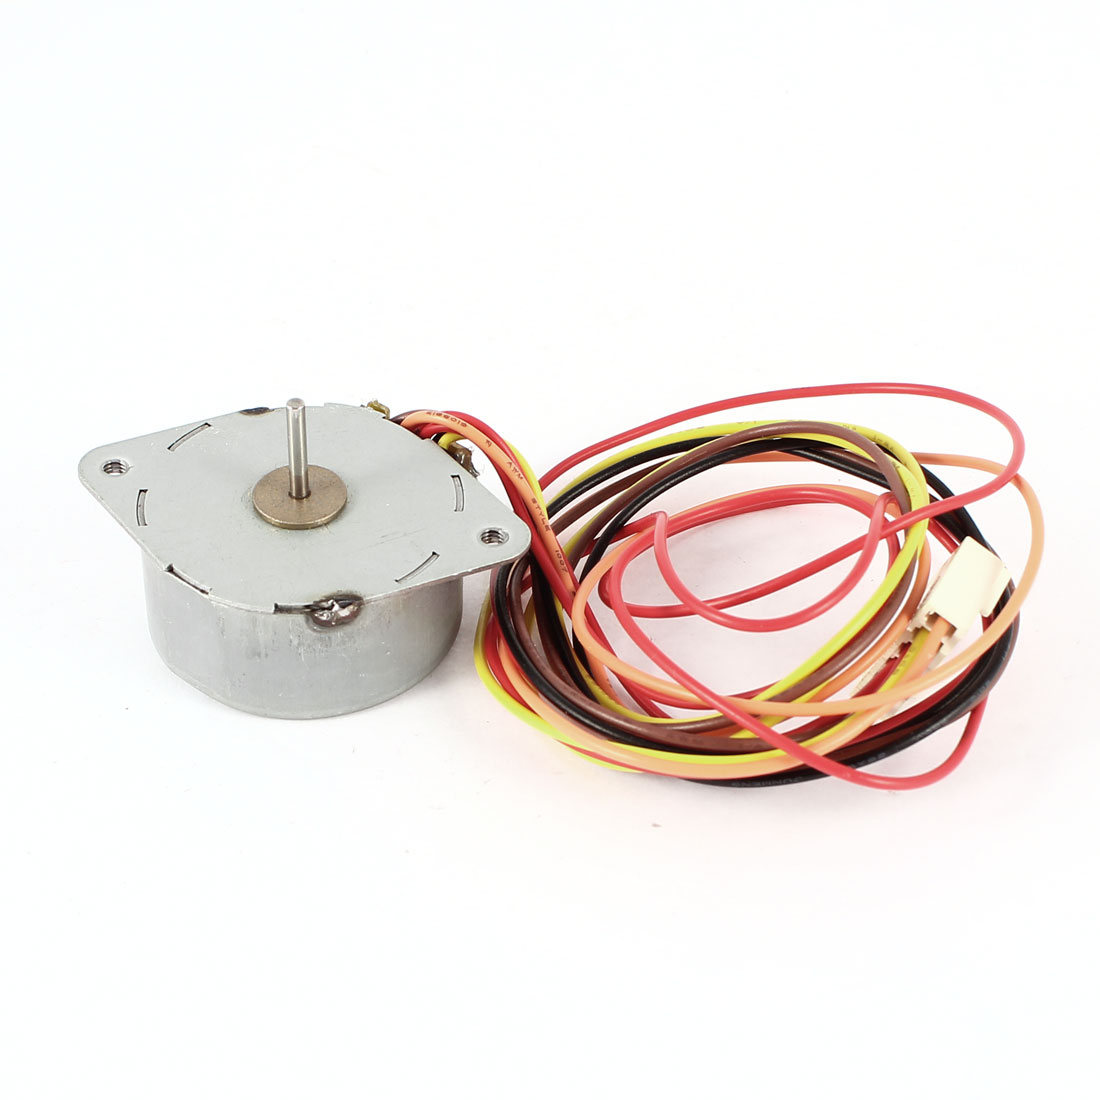 DC 5V-12V 35mm Diameter Round Shaped Hybrid Stepper Stepping Motor Replacement